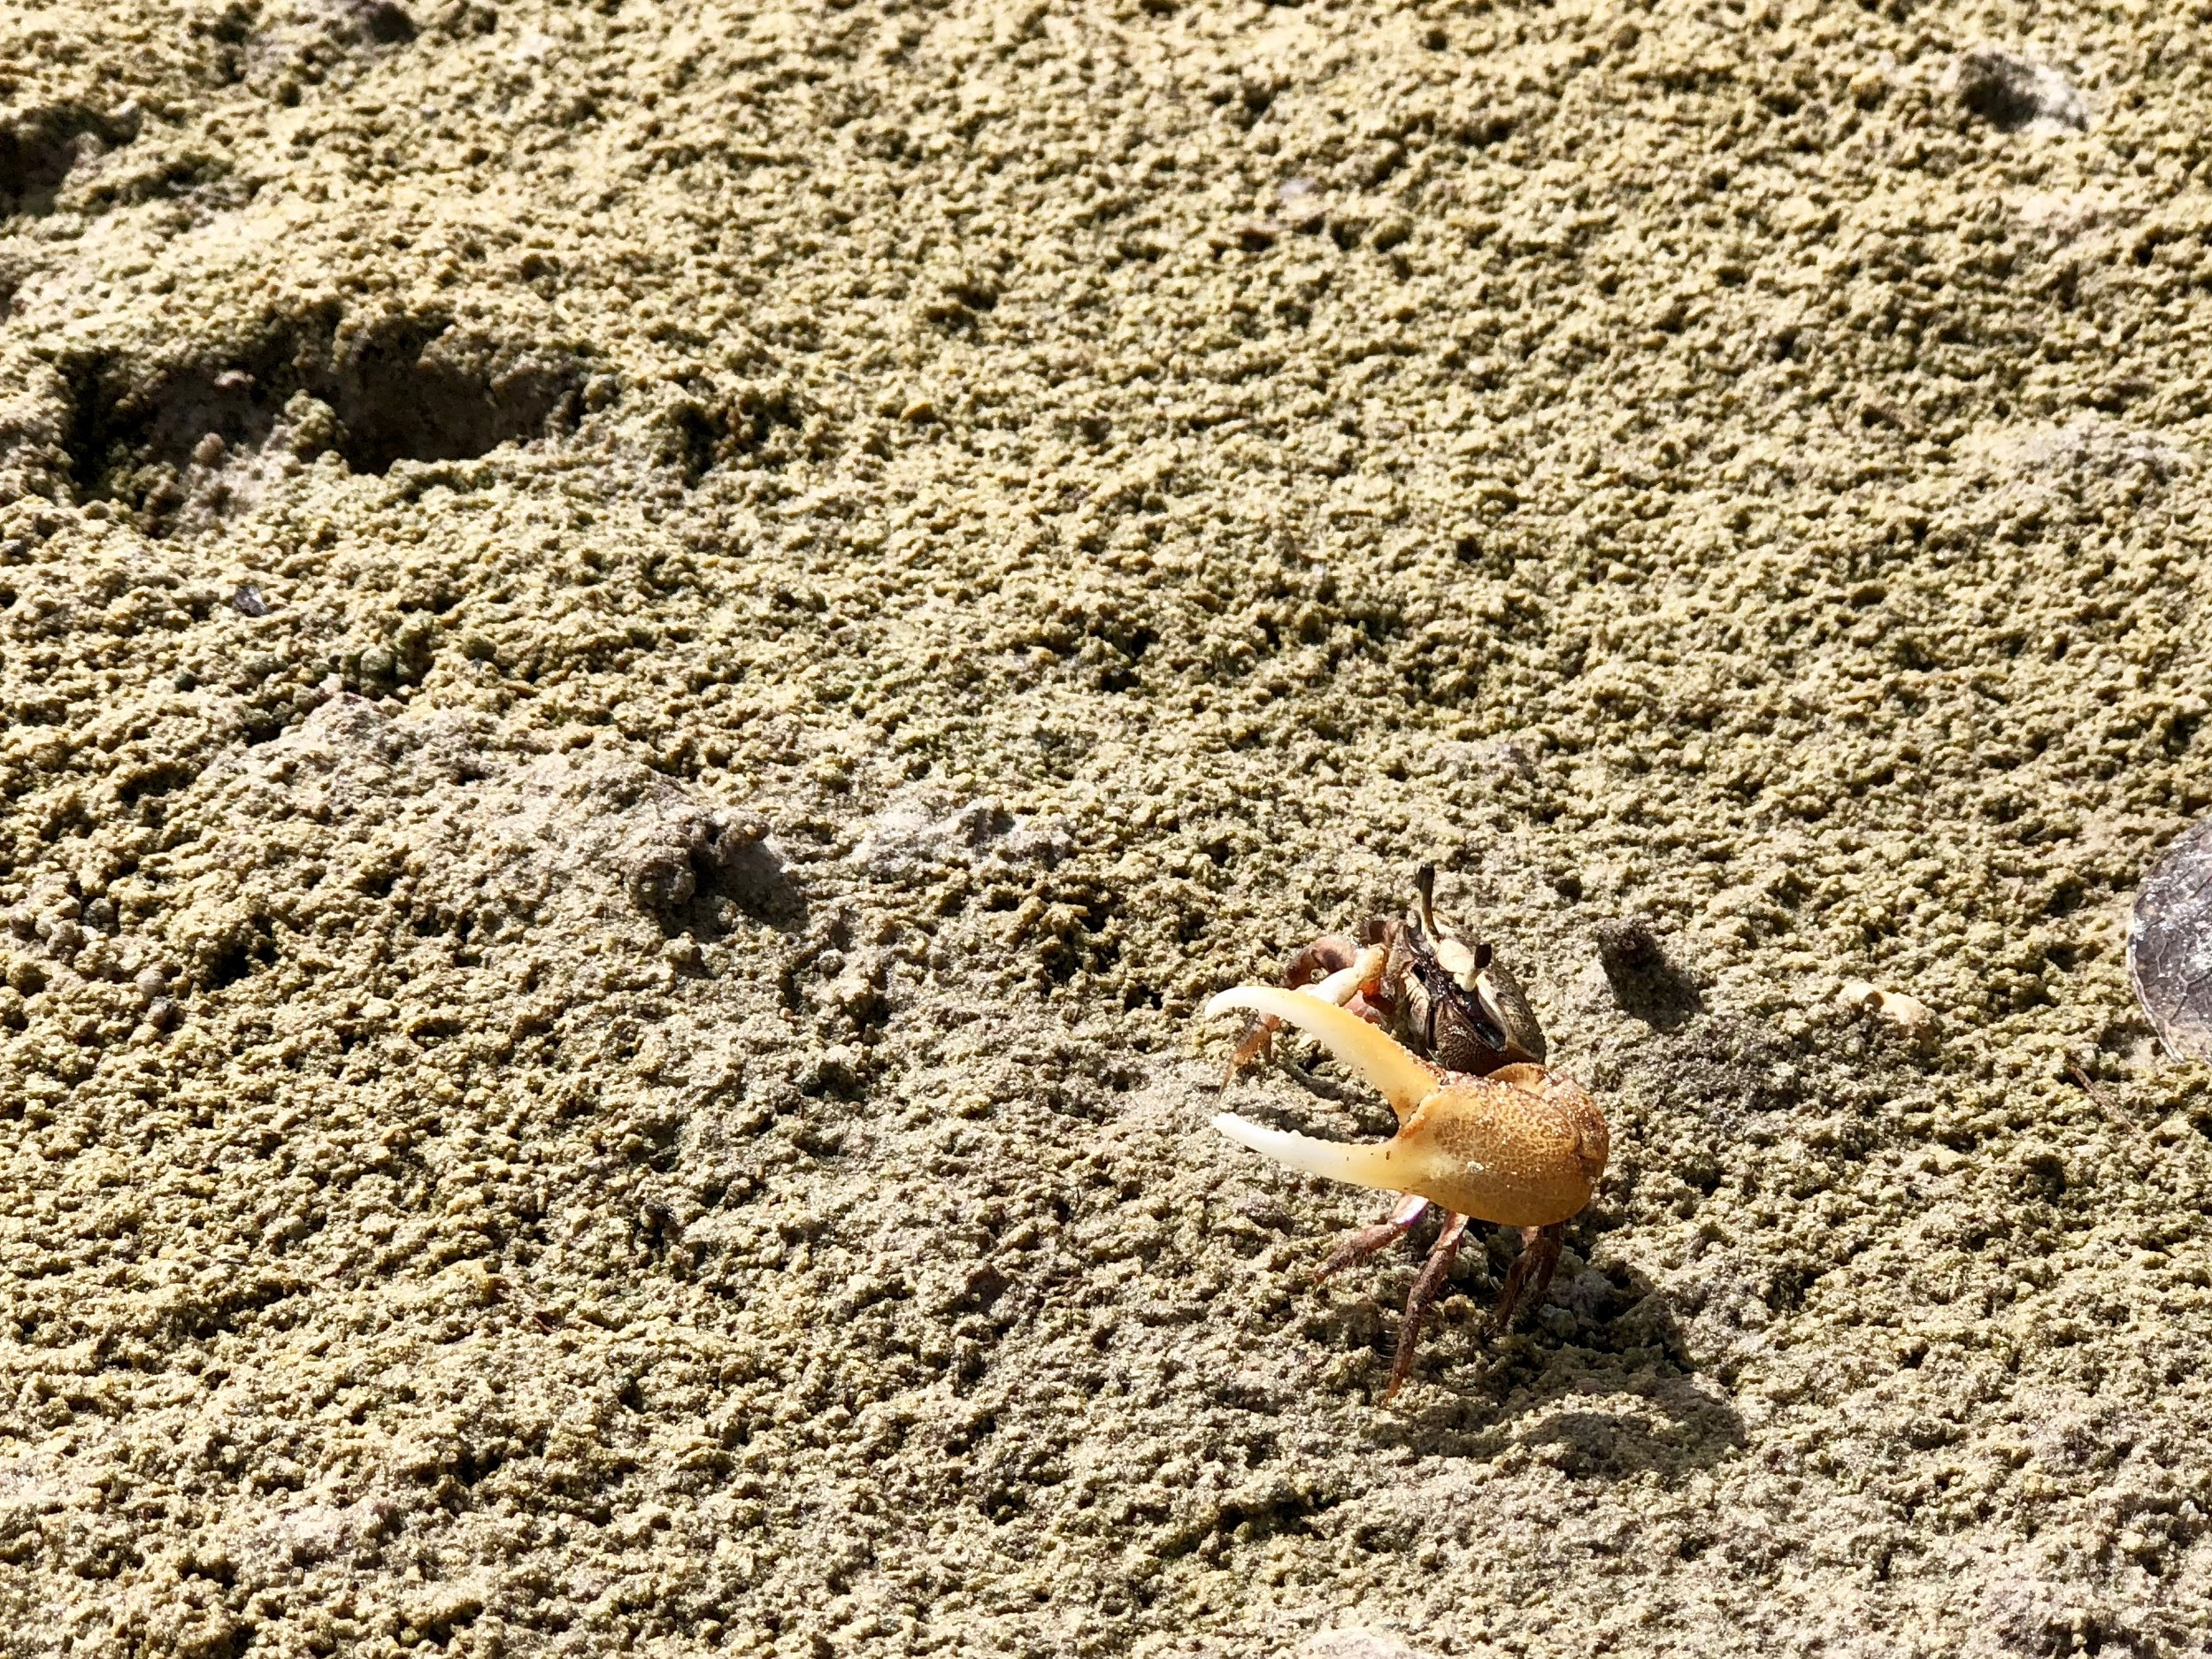 Life - Namesake of the Fiddler Crab Trail